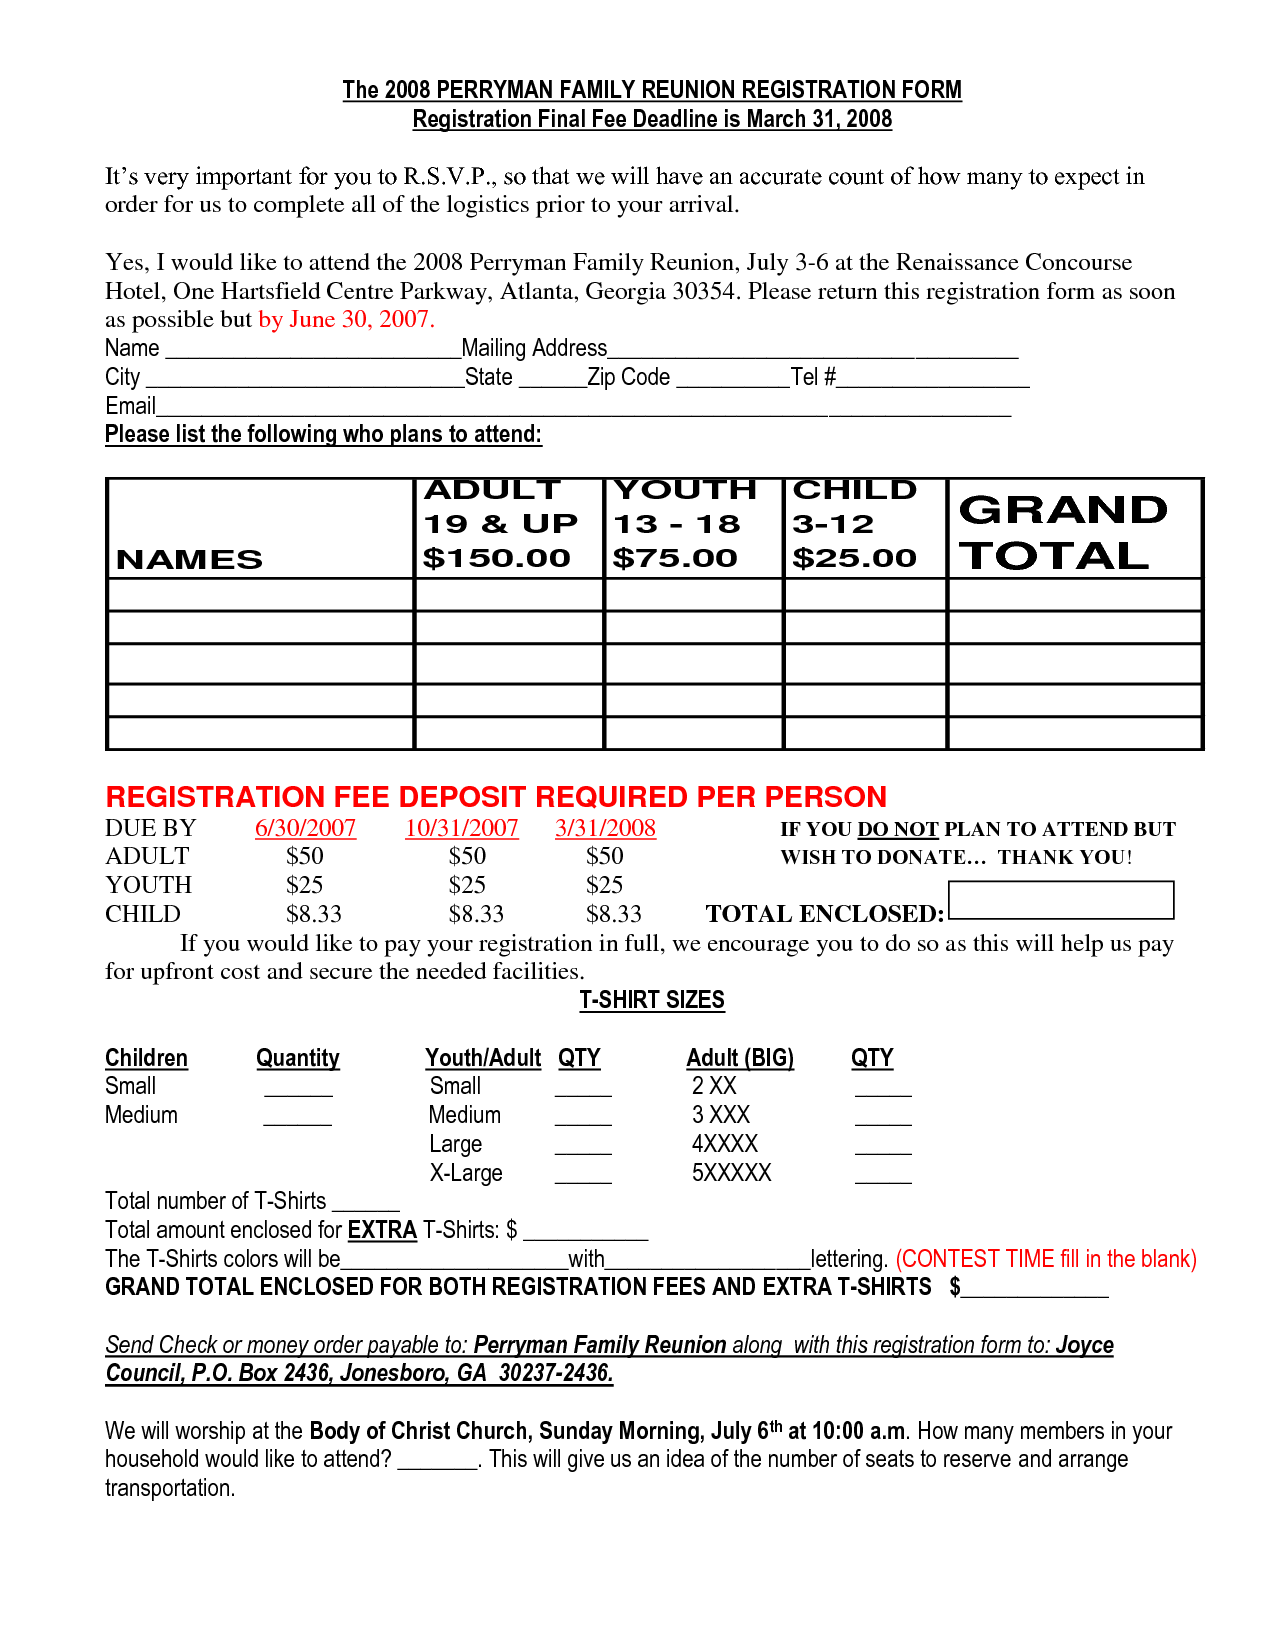 family reunion registration packet | Family Reunion Registration ...